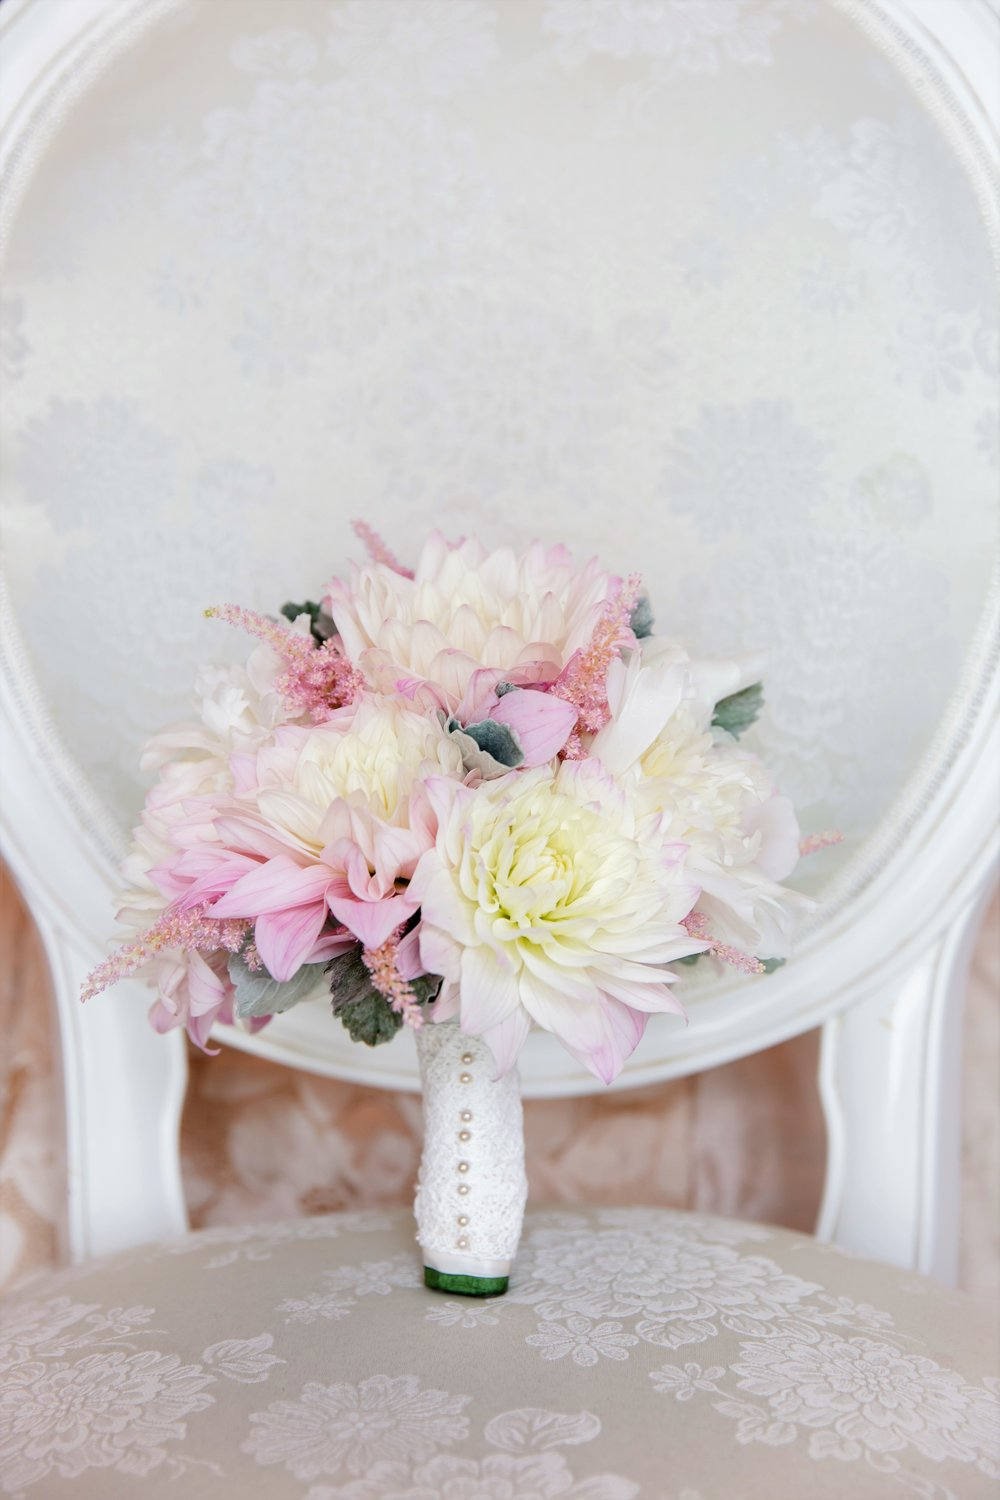 Luxury Pink Wedding Bouquet.JPG